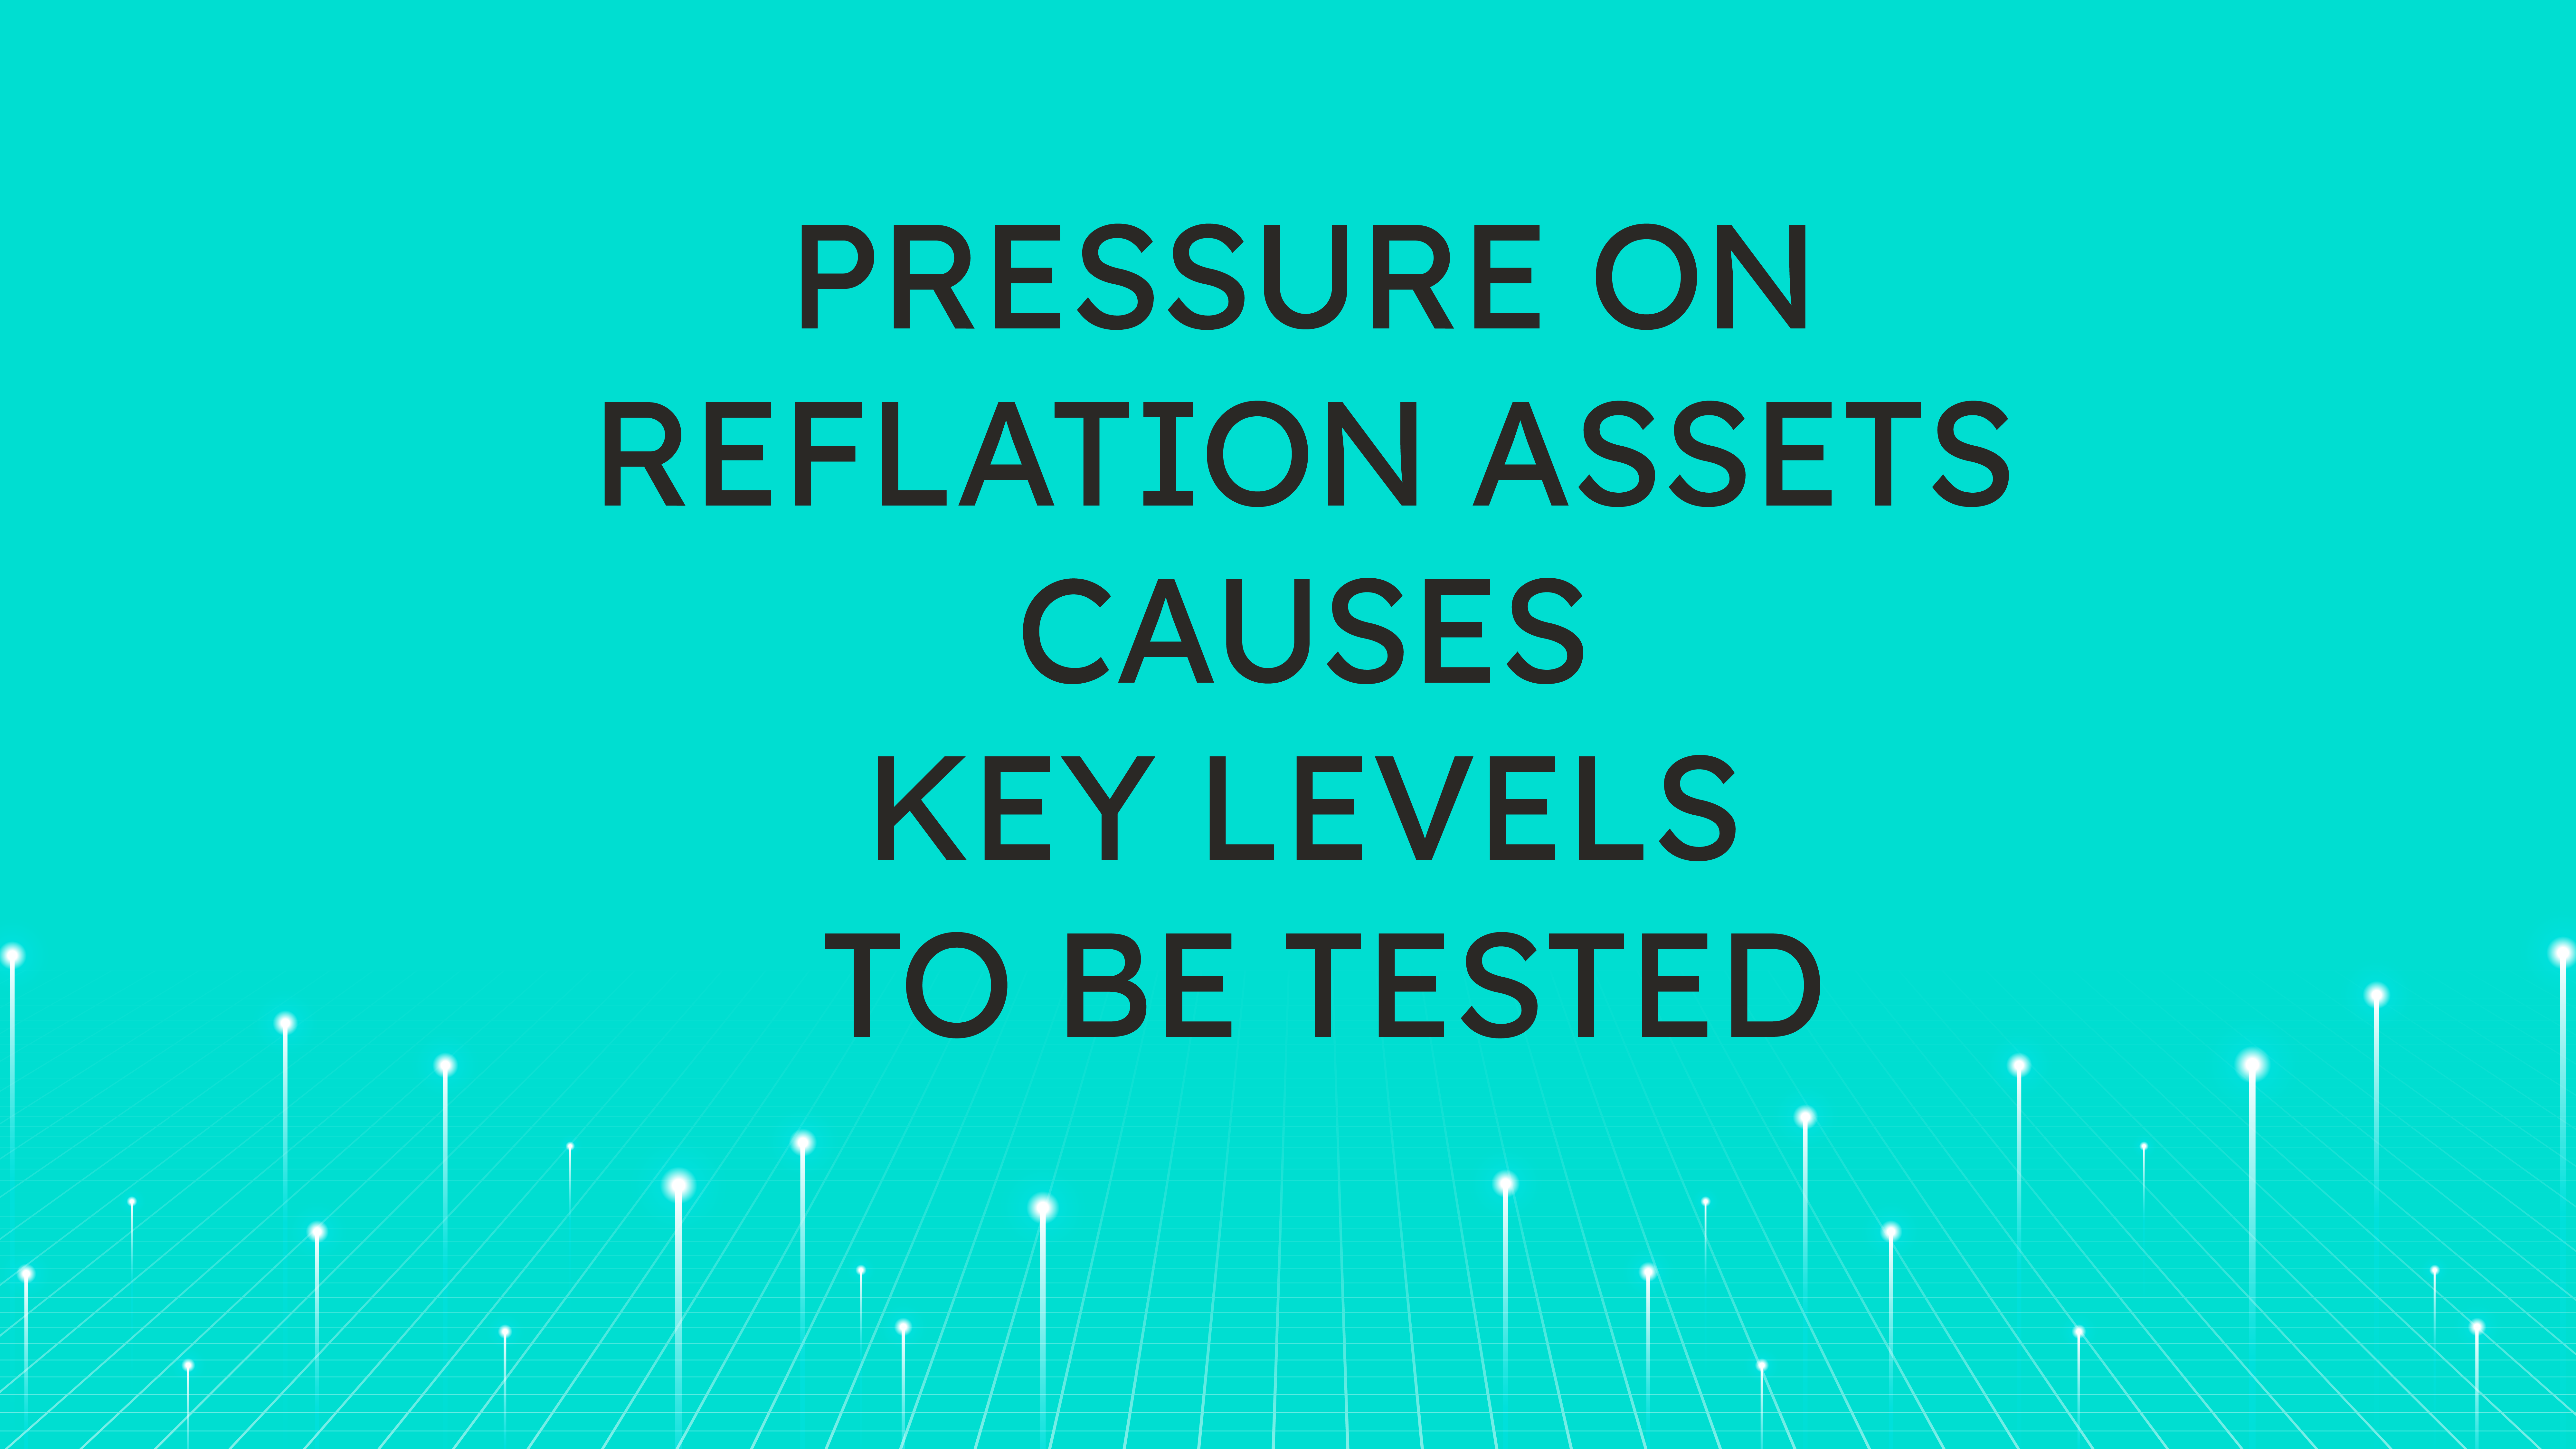 Pressure on Reflation Assets  Causes Key Levels to be Tested